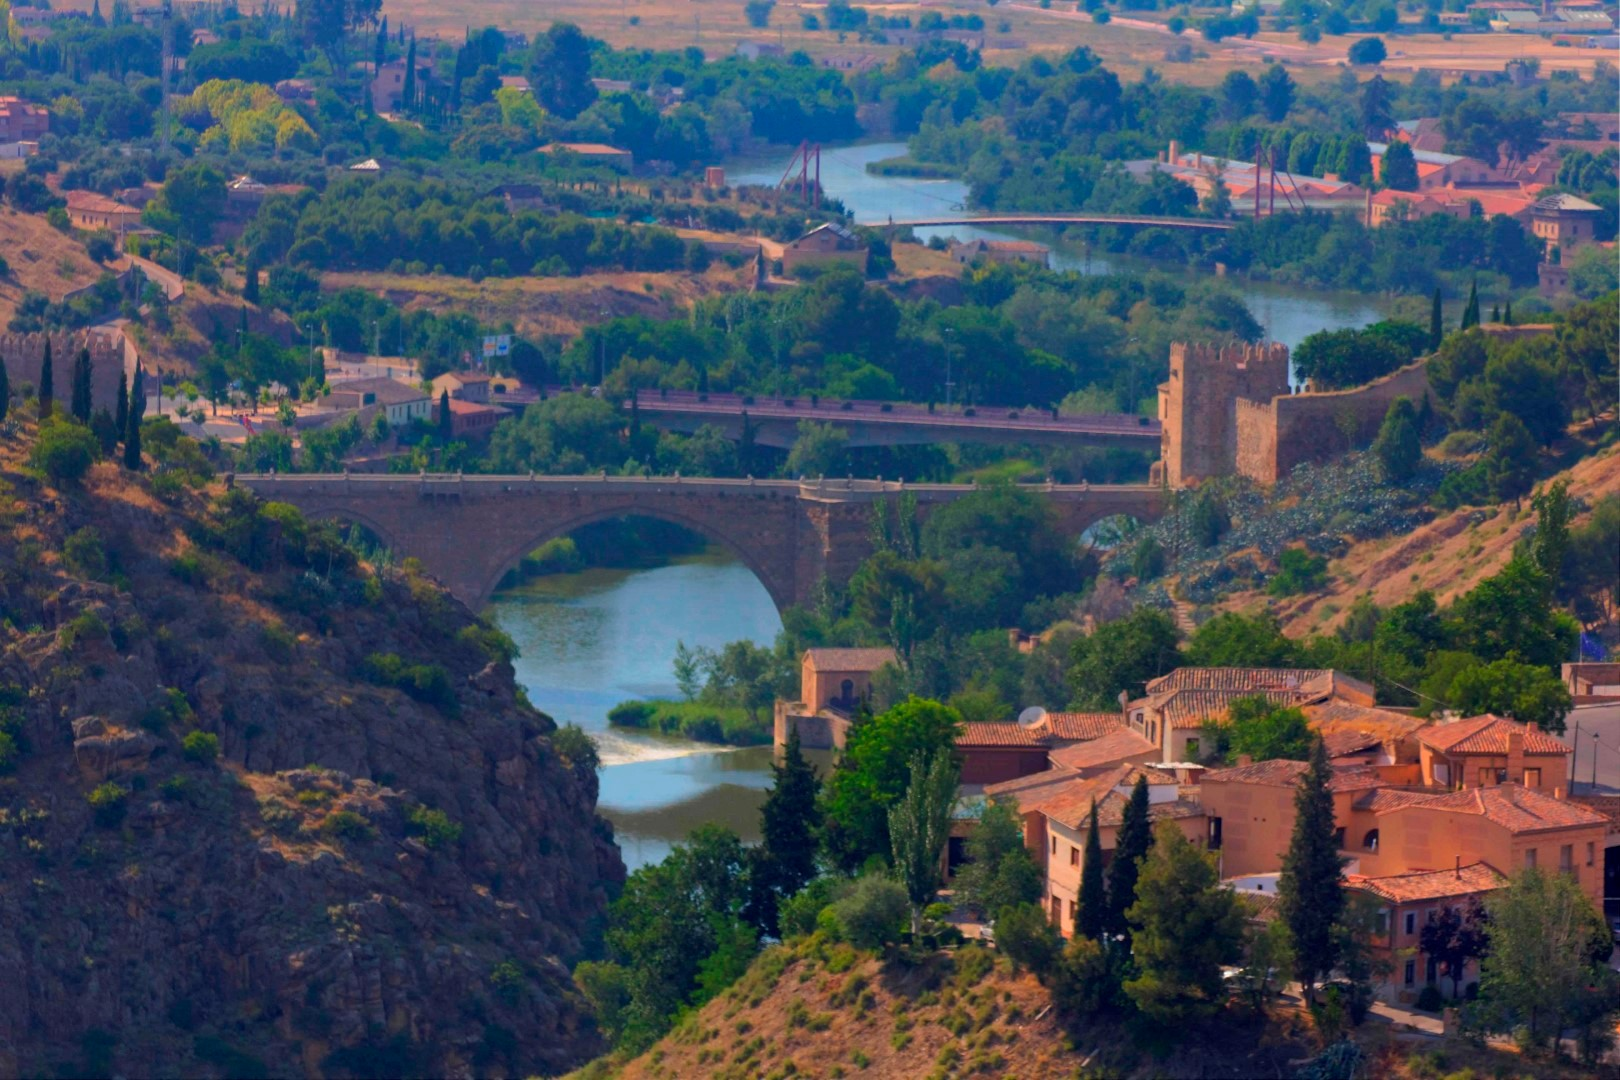 Toledo, Bridges, Tagus, Spain, Travelers Roundtable, Robert Bundy